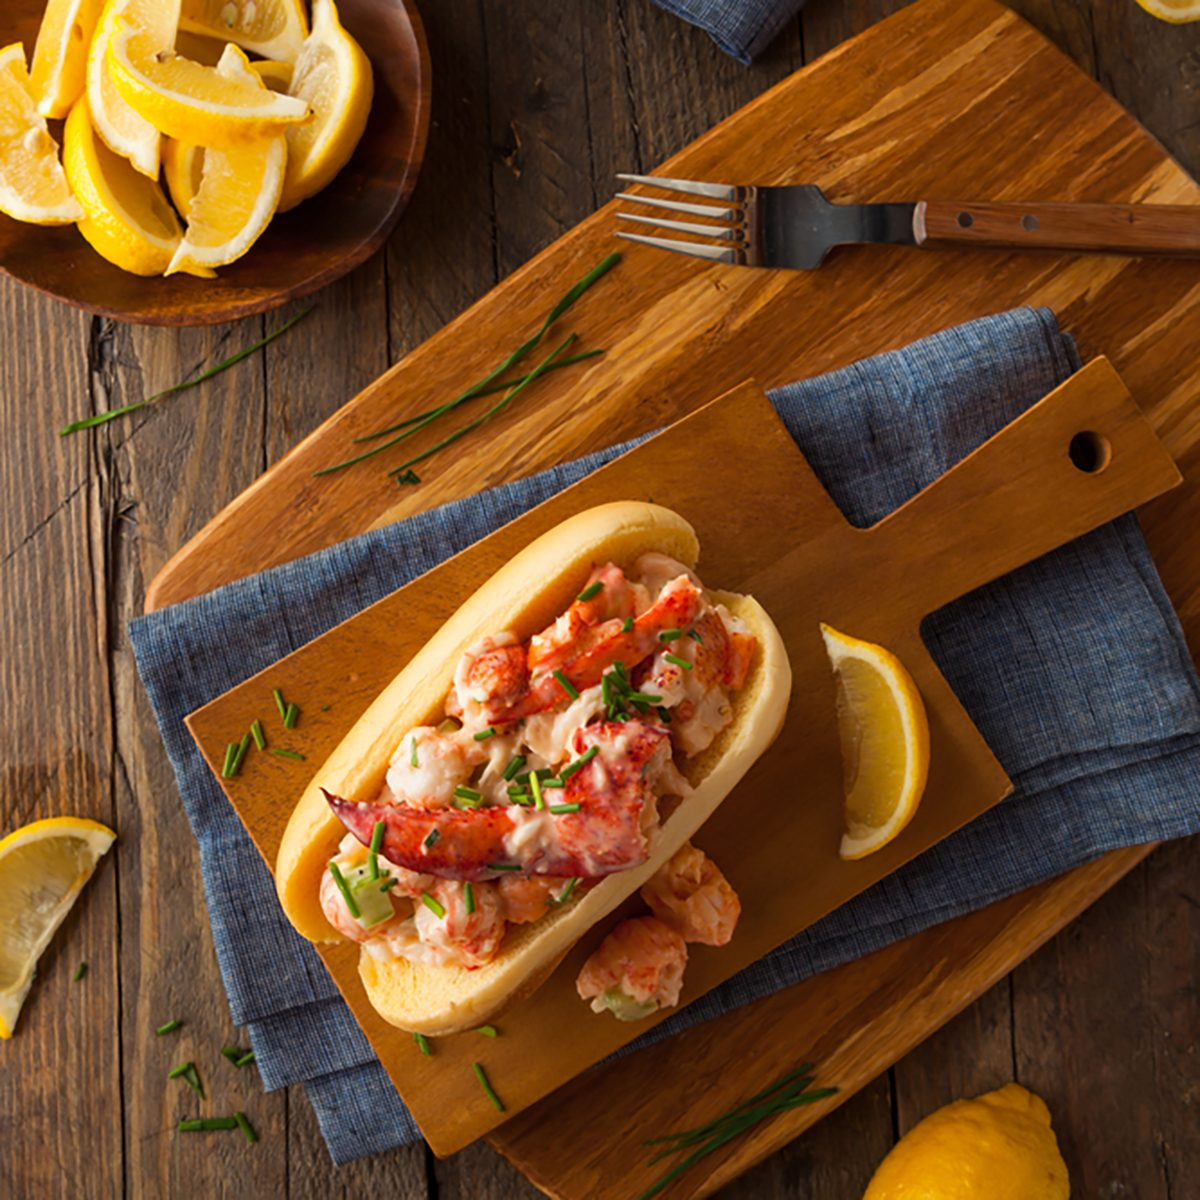 Homemade New England Lobster Roll with Lemons